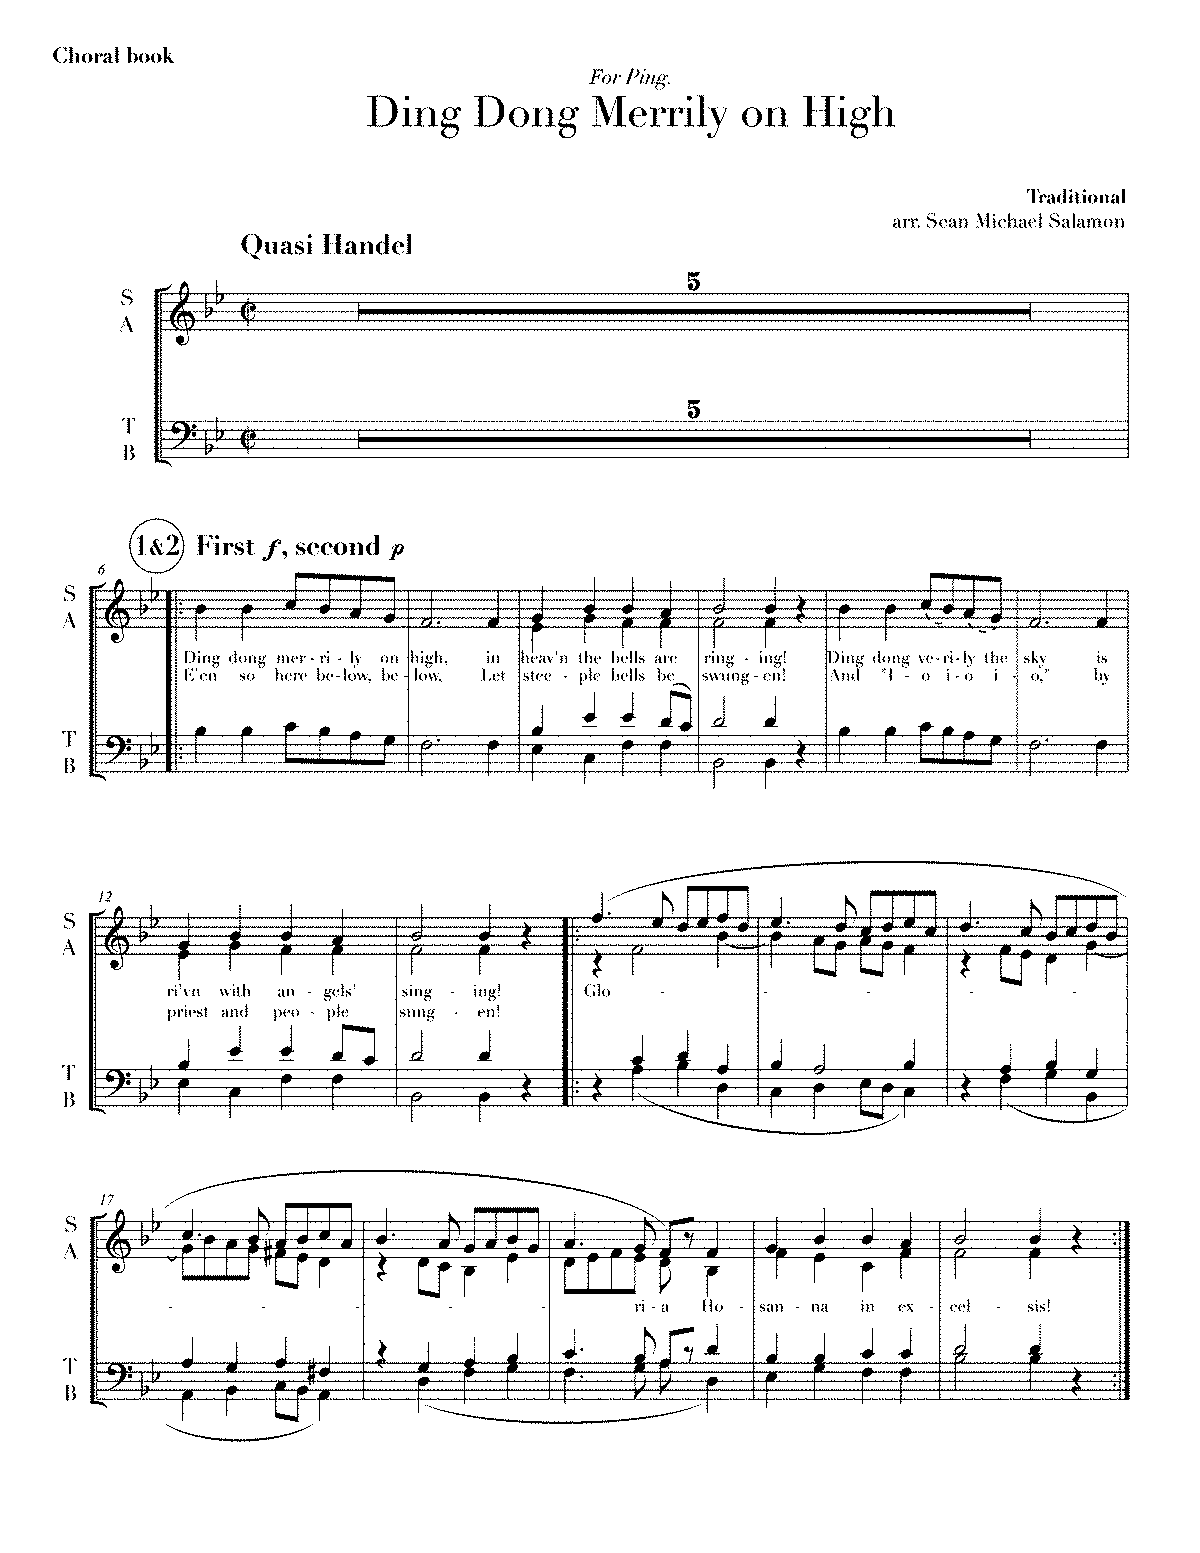 PMLP427345-Ding Dong Merrily (choral book).pdf